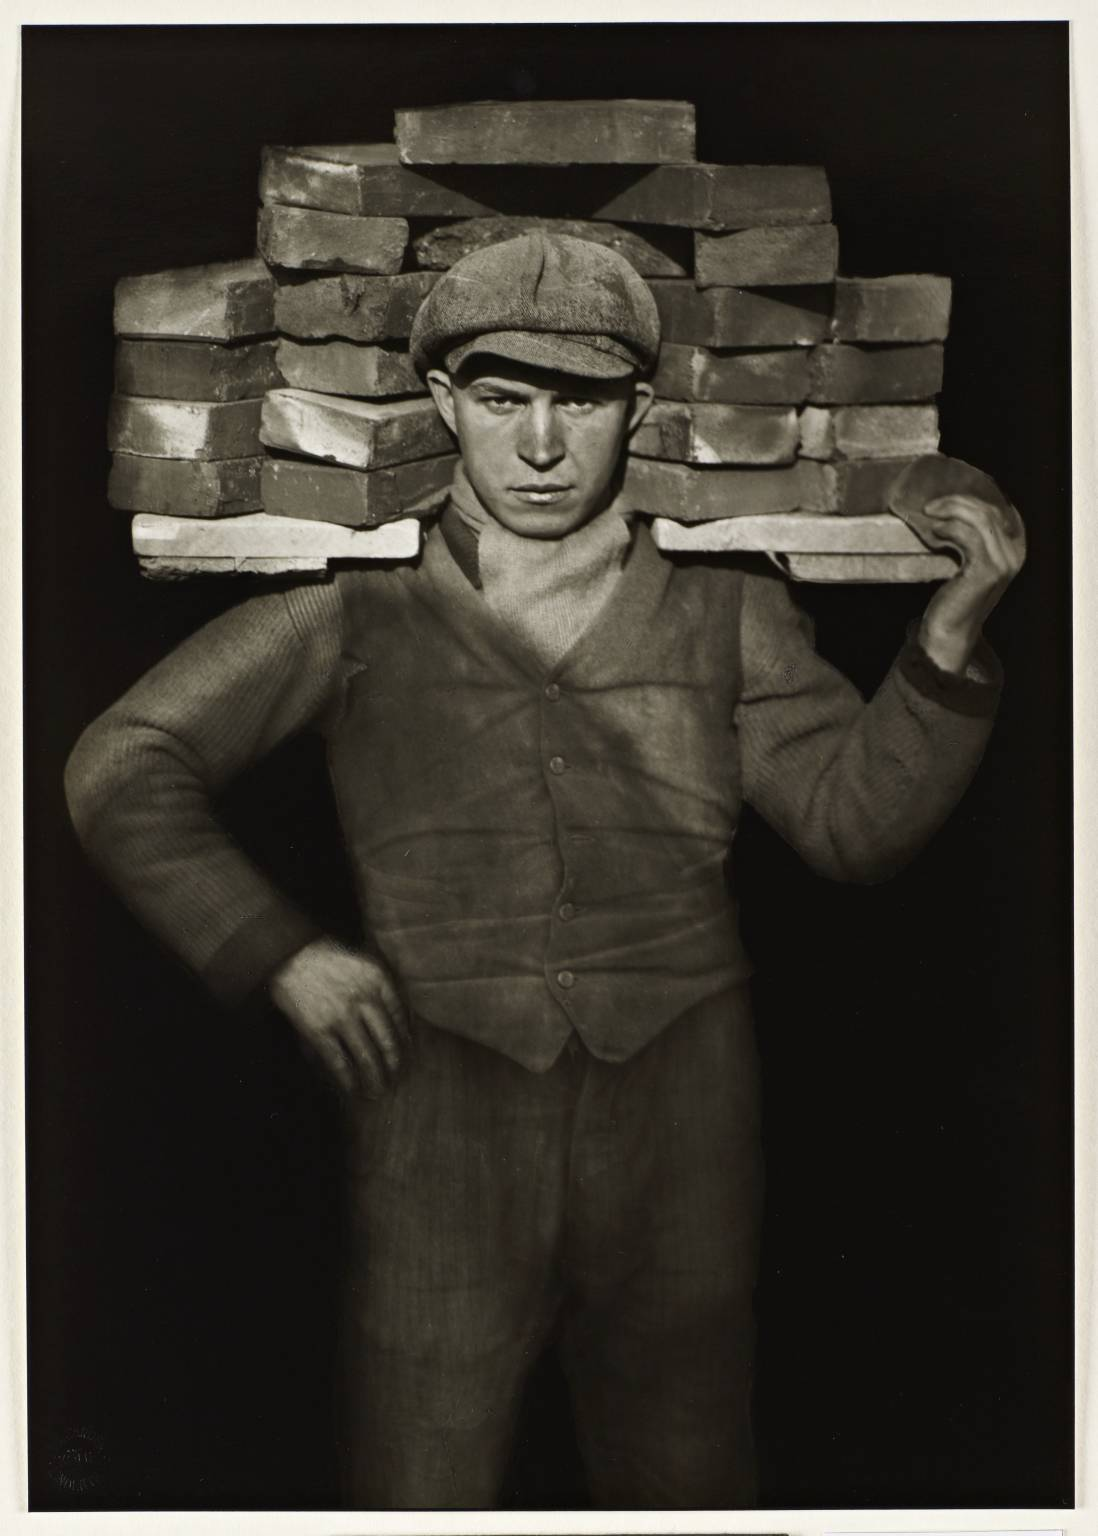 Bricklayer 1928, printed 1990 by August Sander 1876-1964